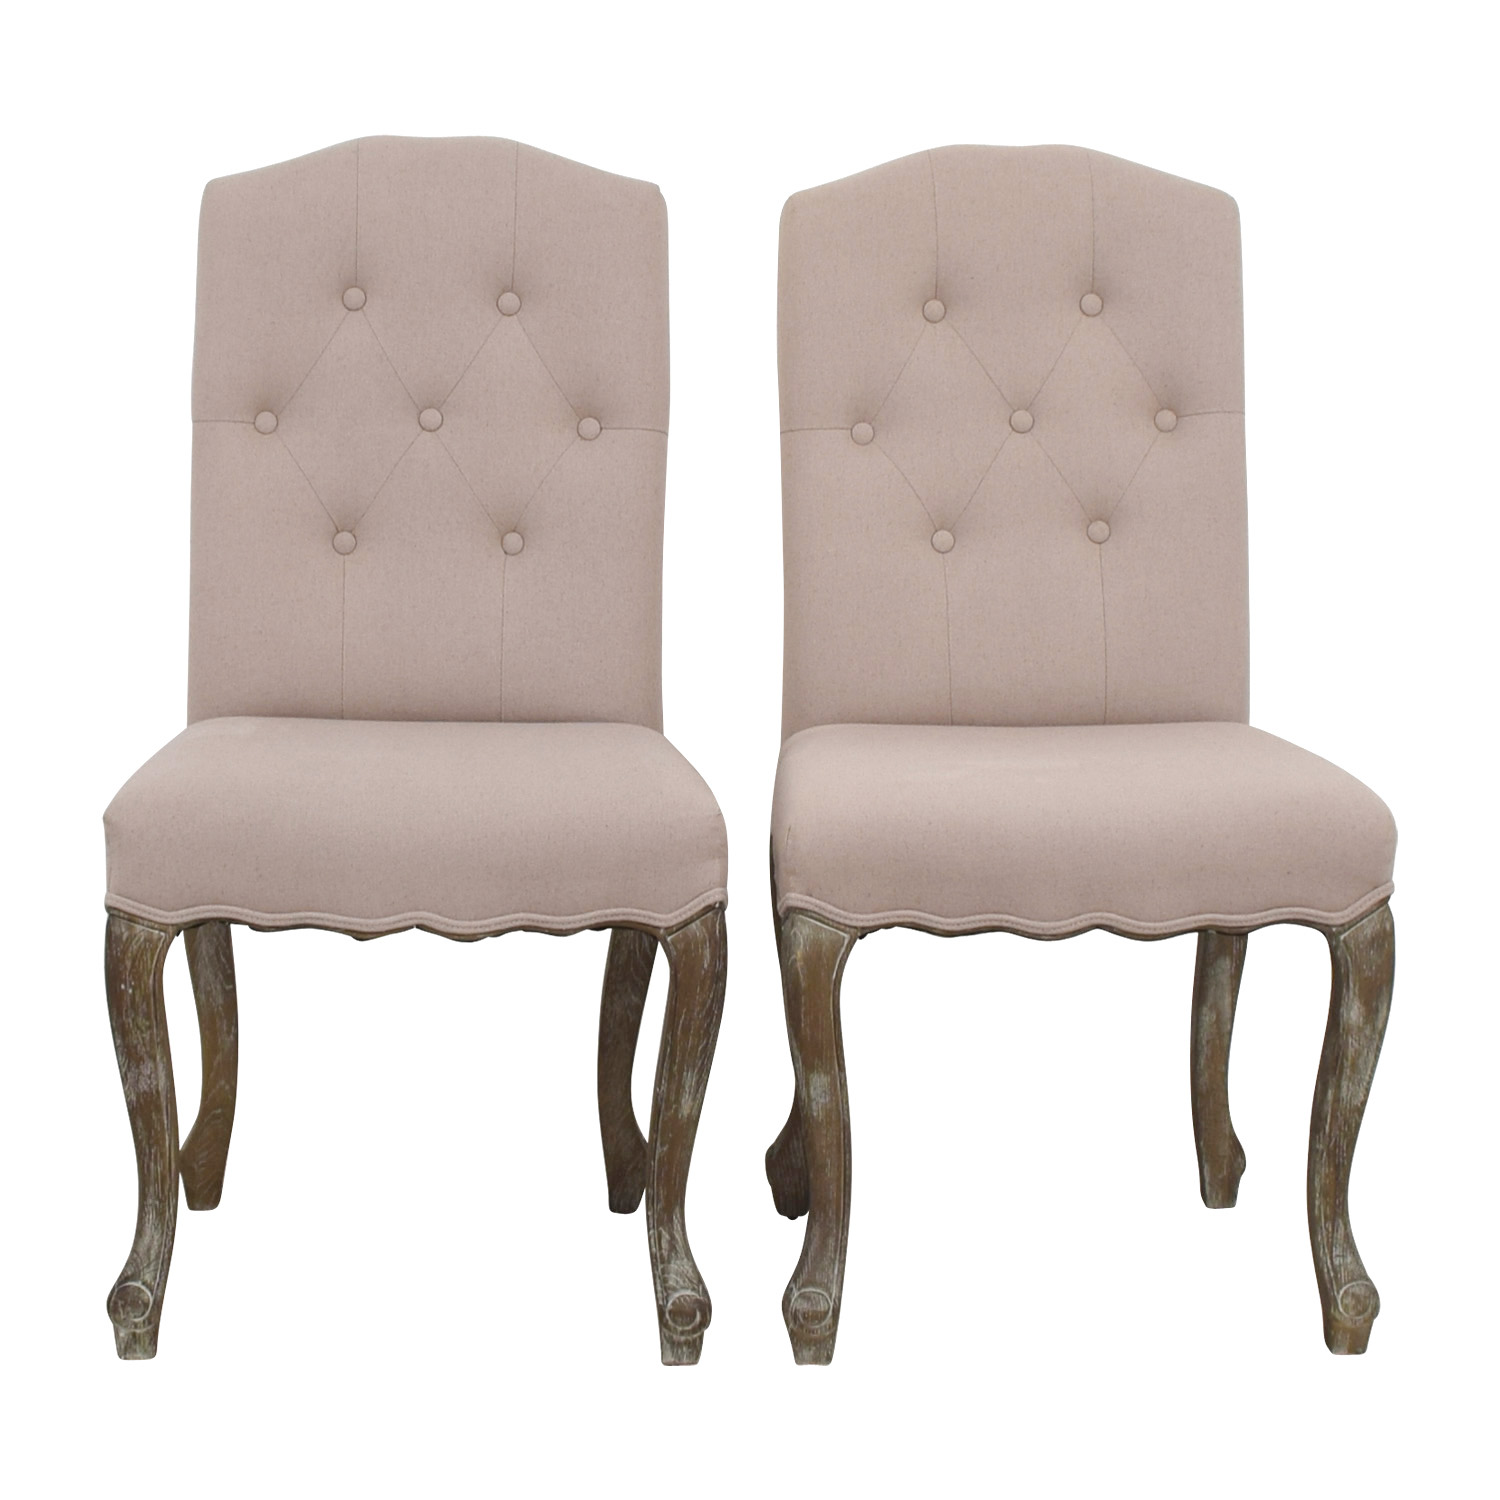 Safavieh Safavieh Tufted Beige Side Chairs for sale